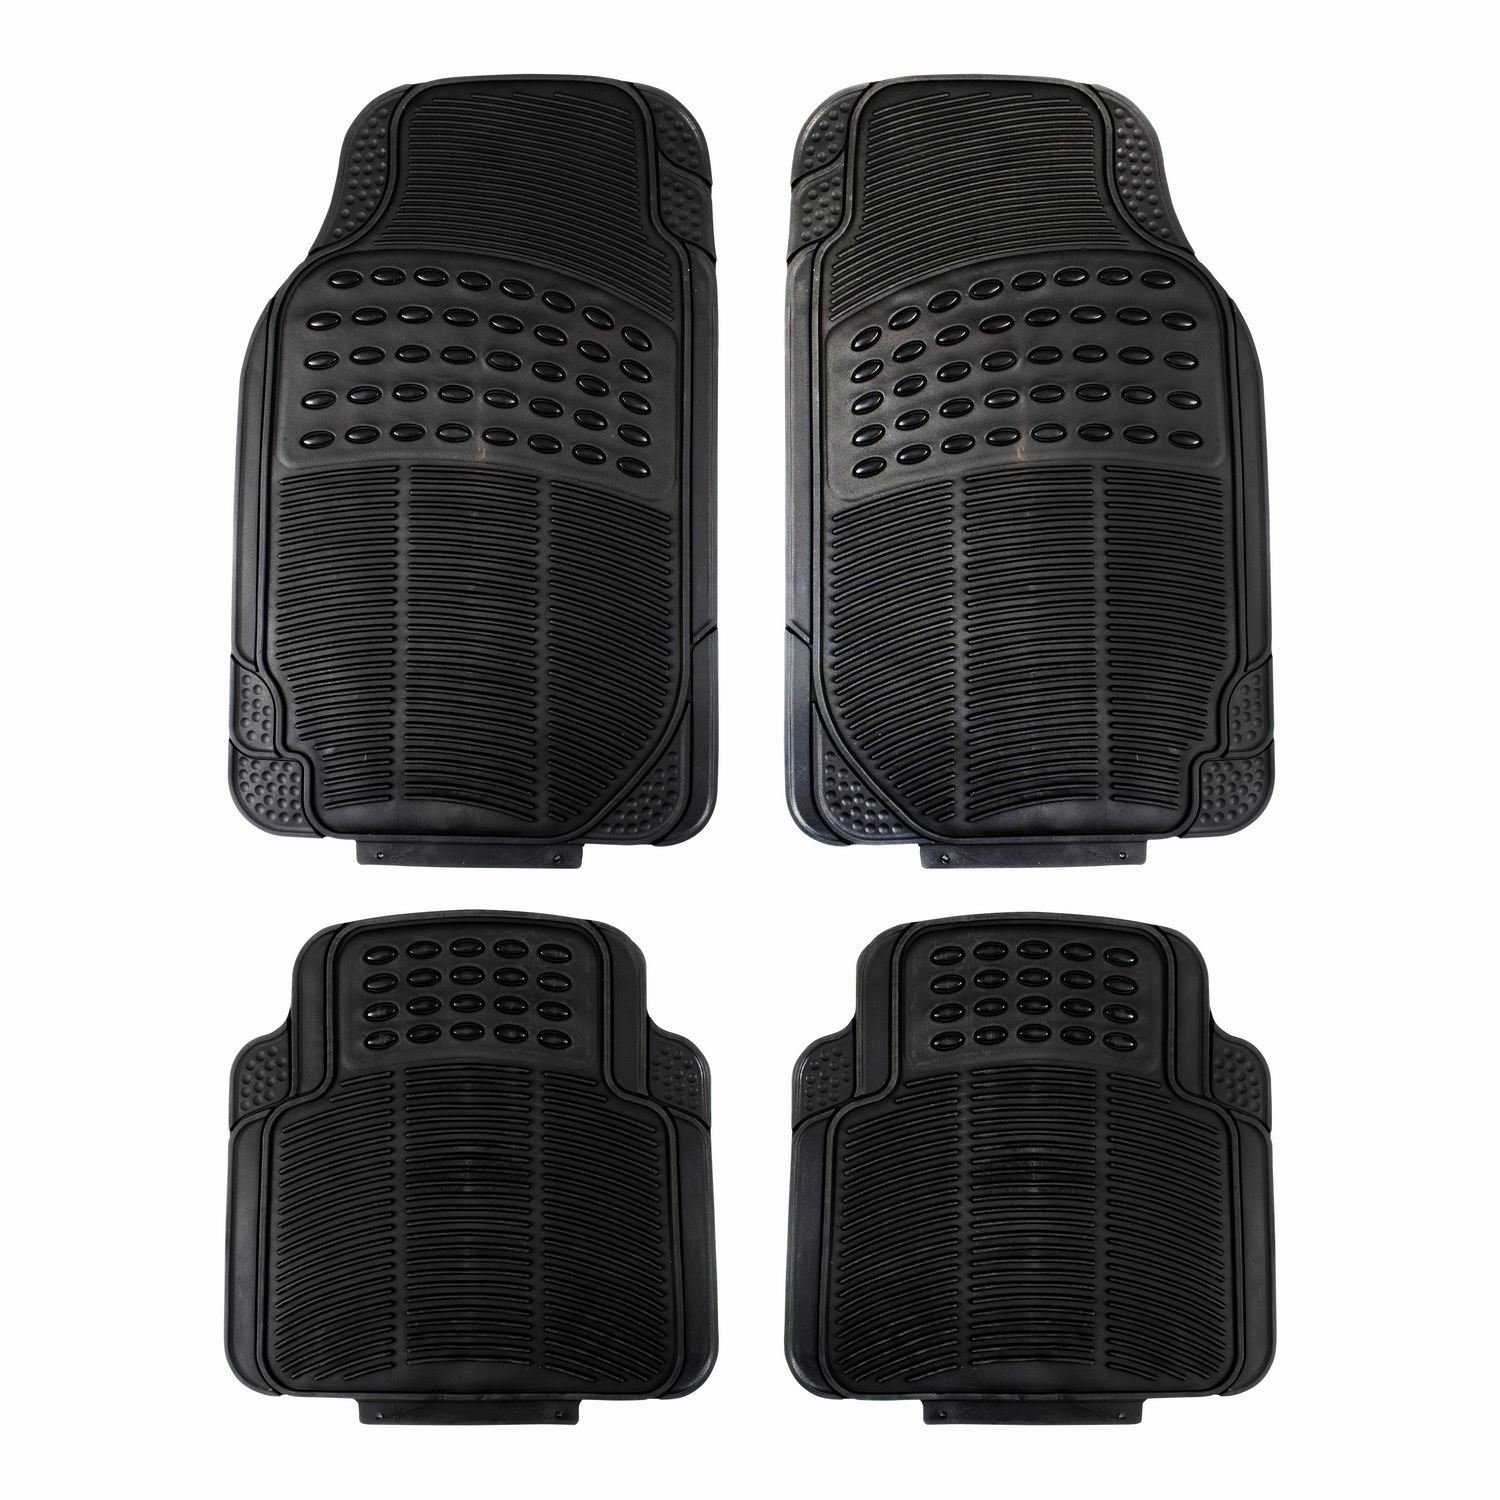 Fifth Gear 4pc Heavy Duty Universal Black Rubber Car Mat Set Non Slip Grip B0143534VY